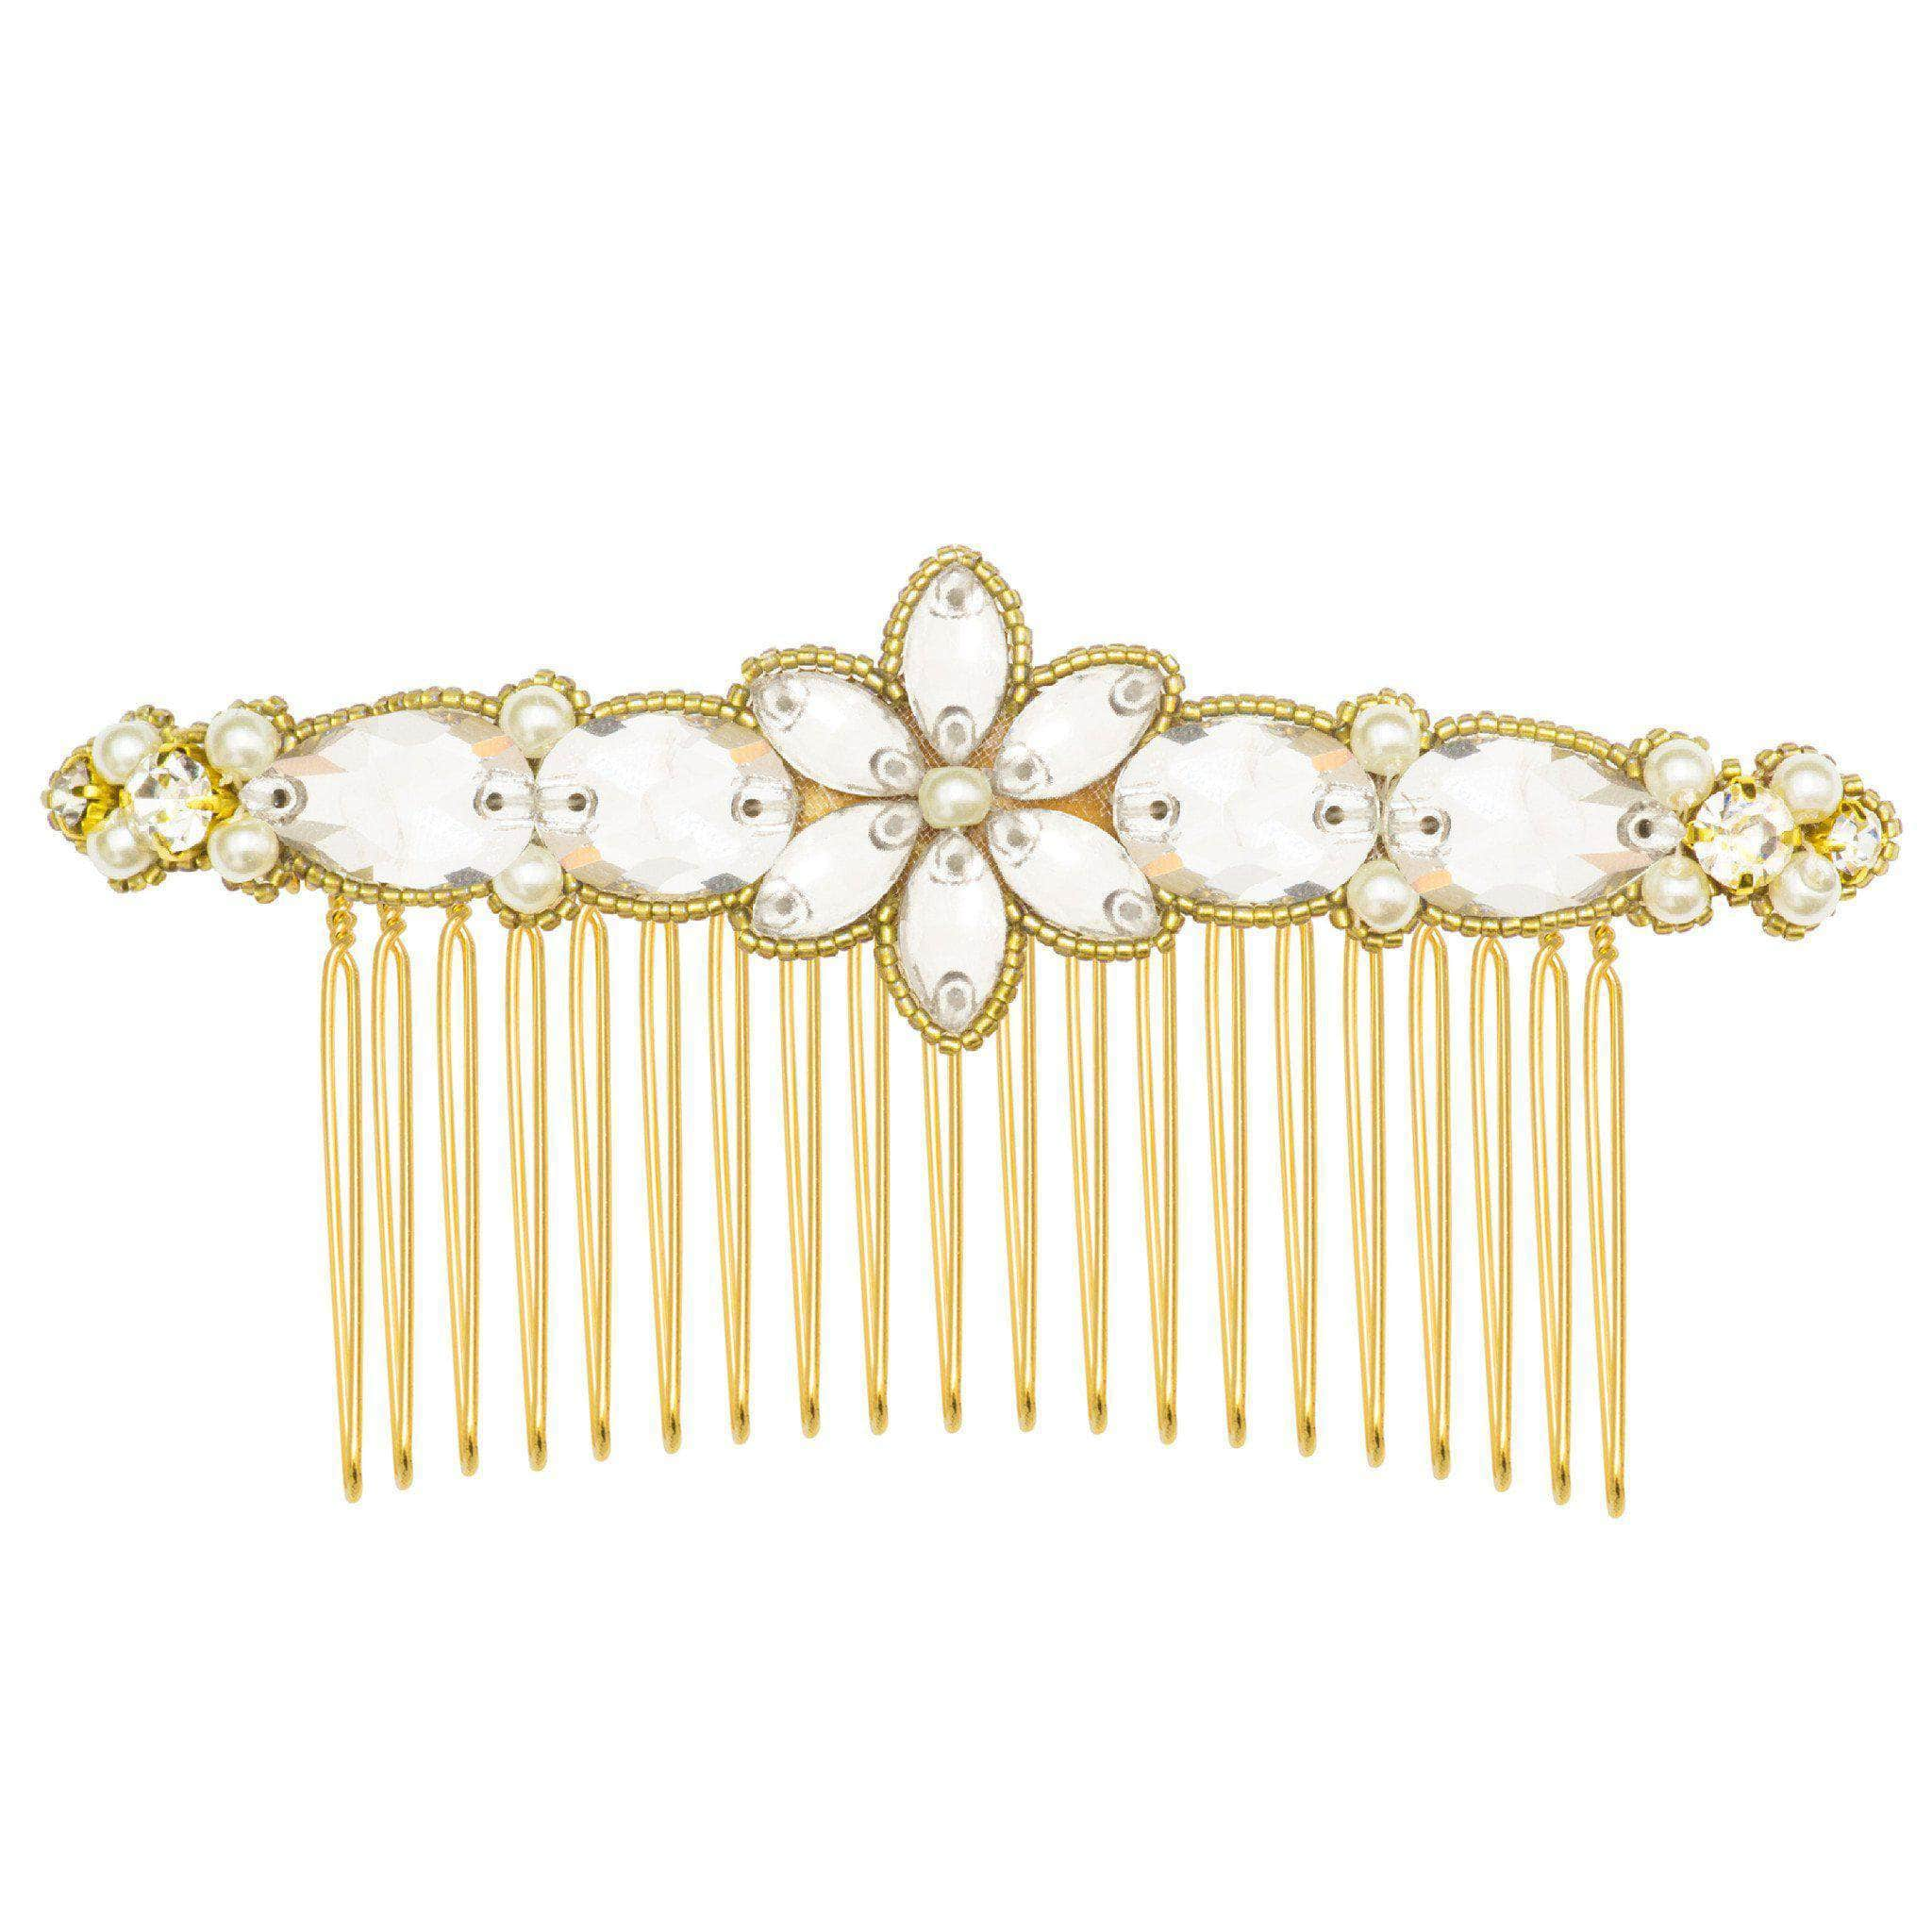 Gold wedding hair comb